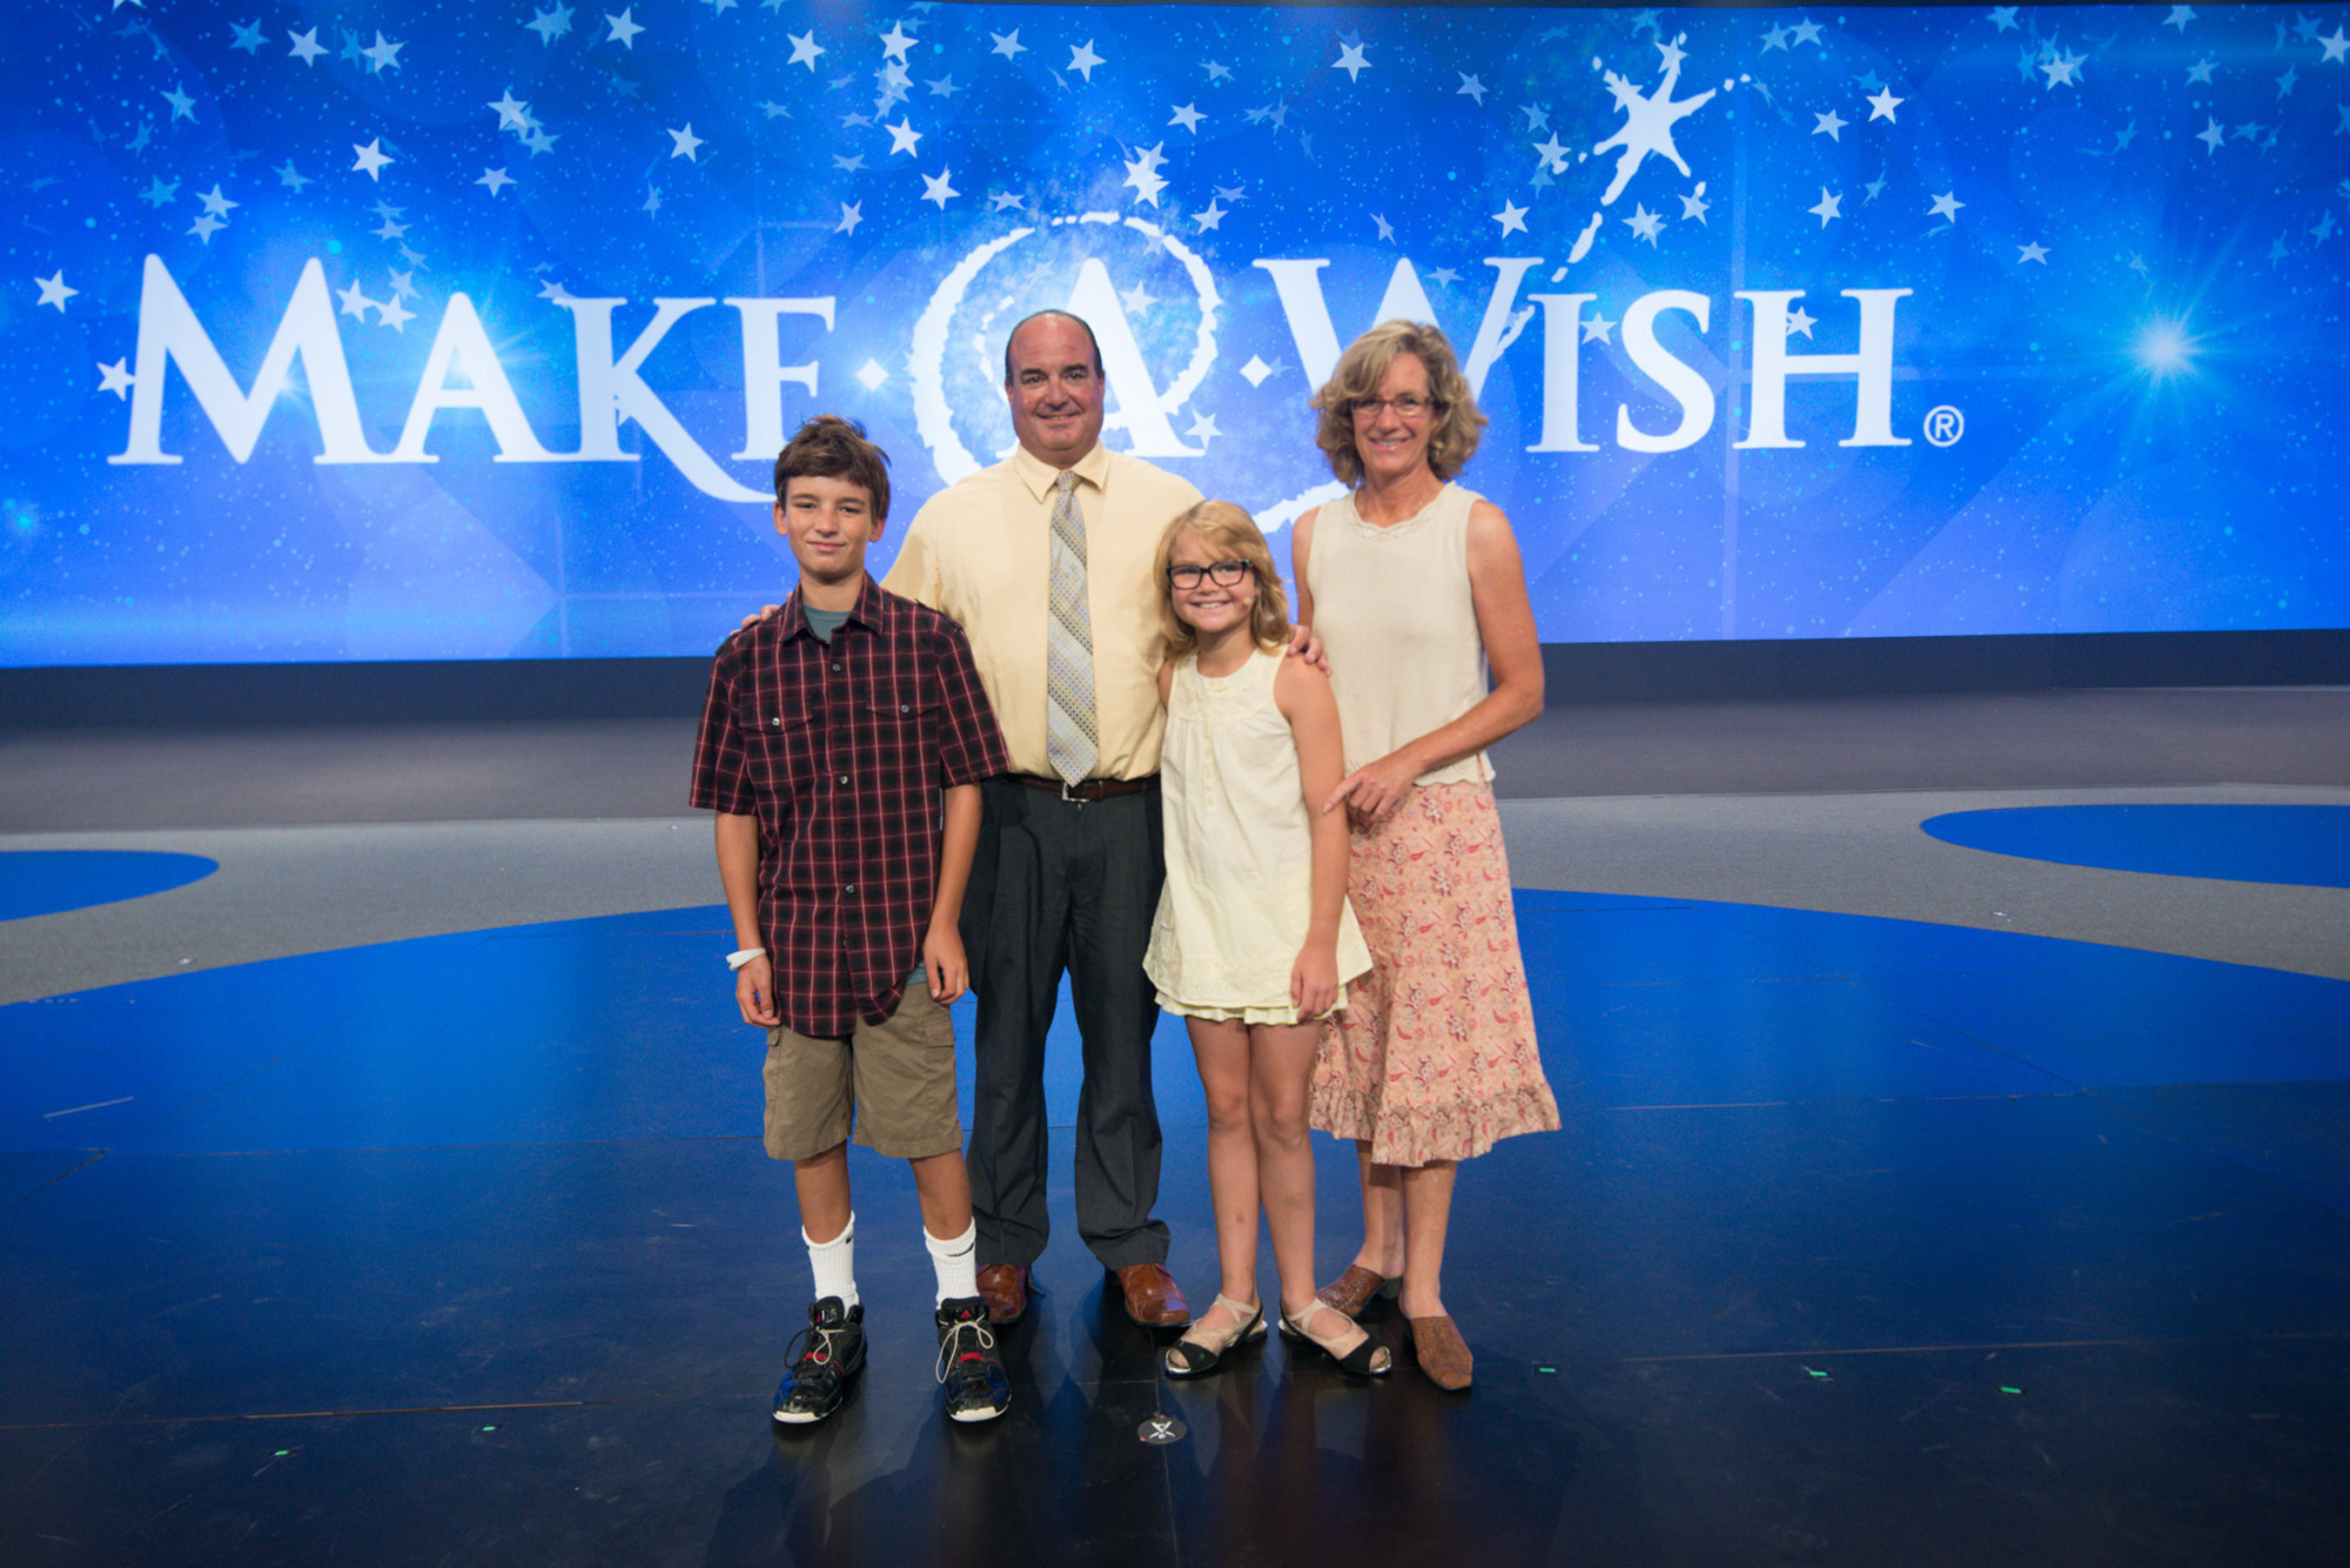 San Diego Make-A-Wish child Tanika and her family celebrate her wish reveal at Isagenix's Celebration 2015.